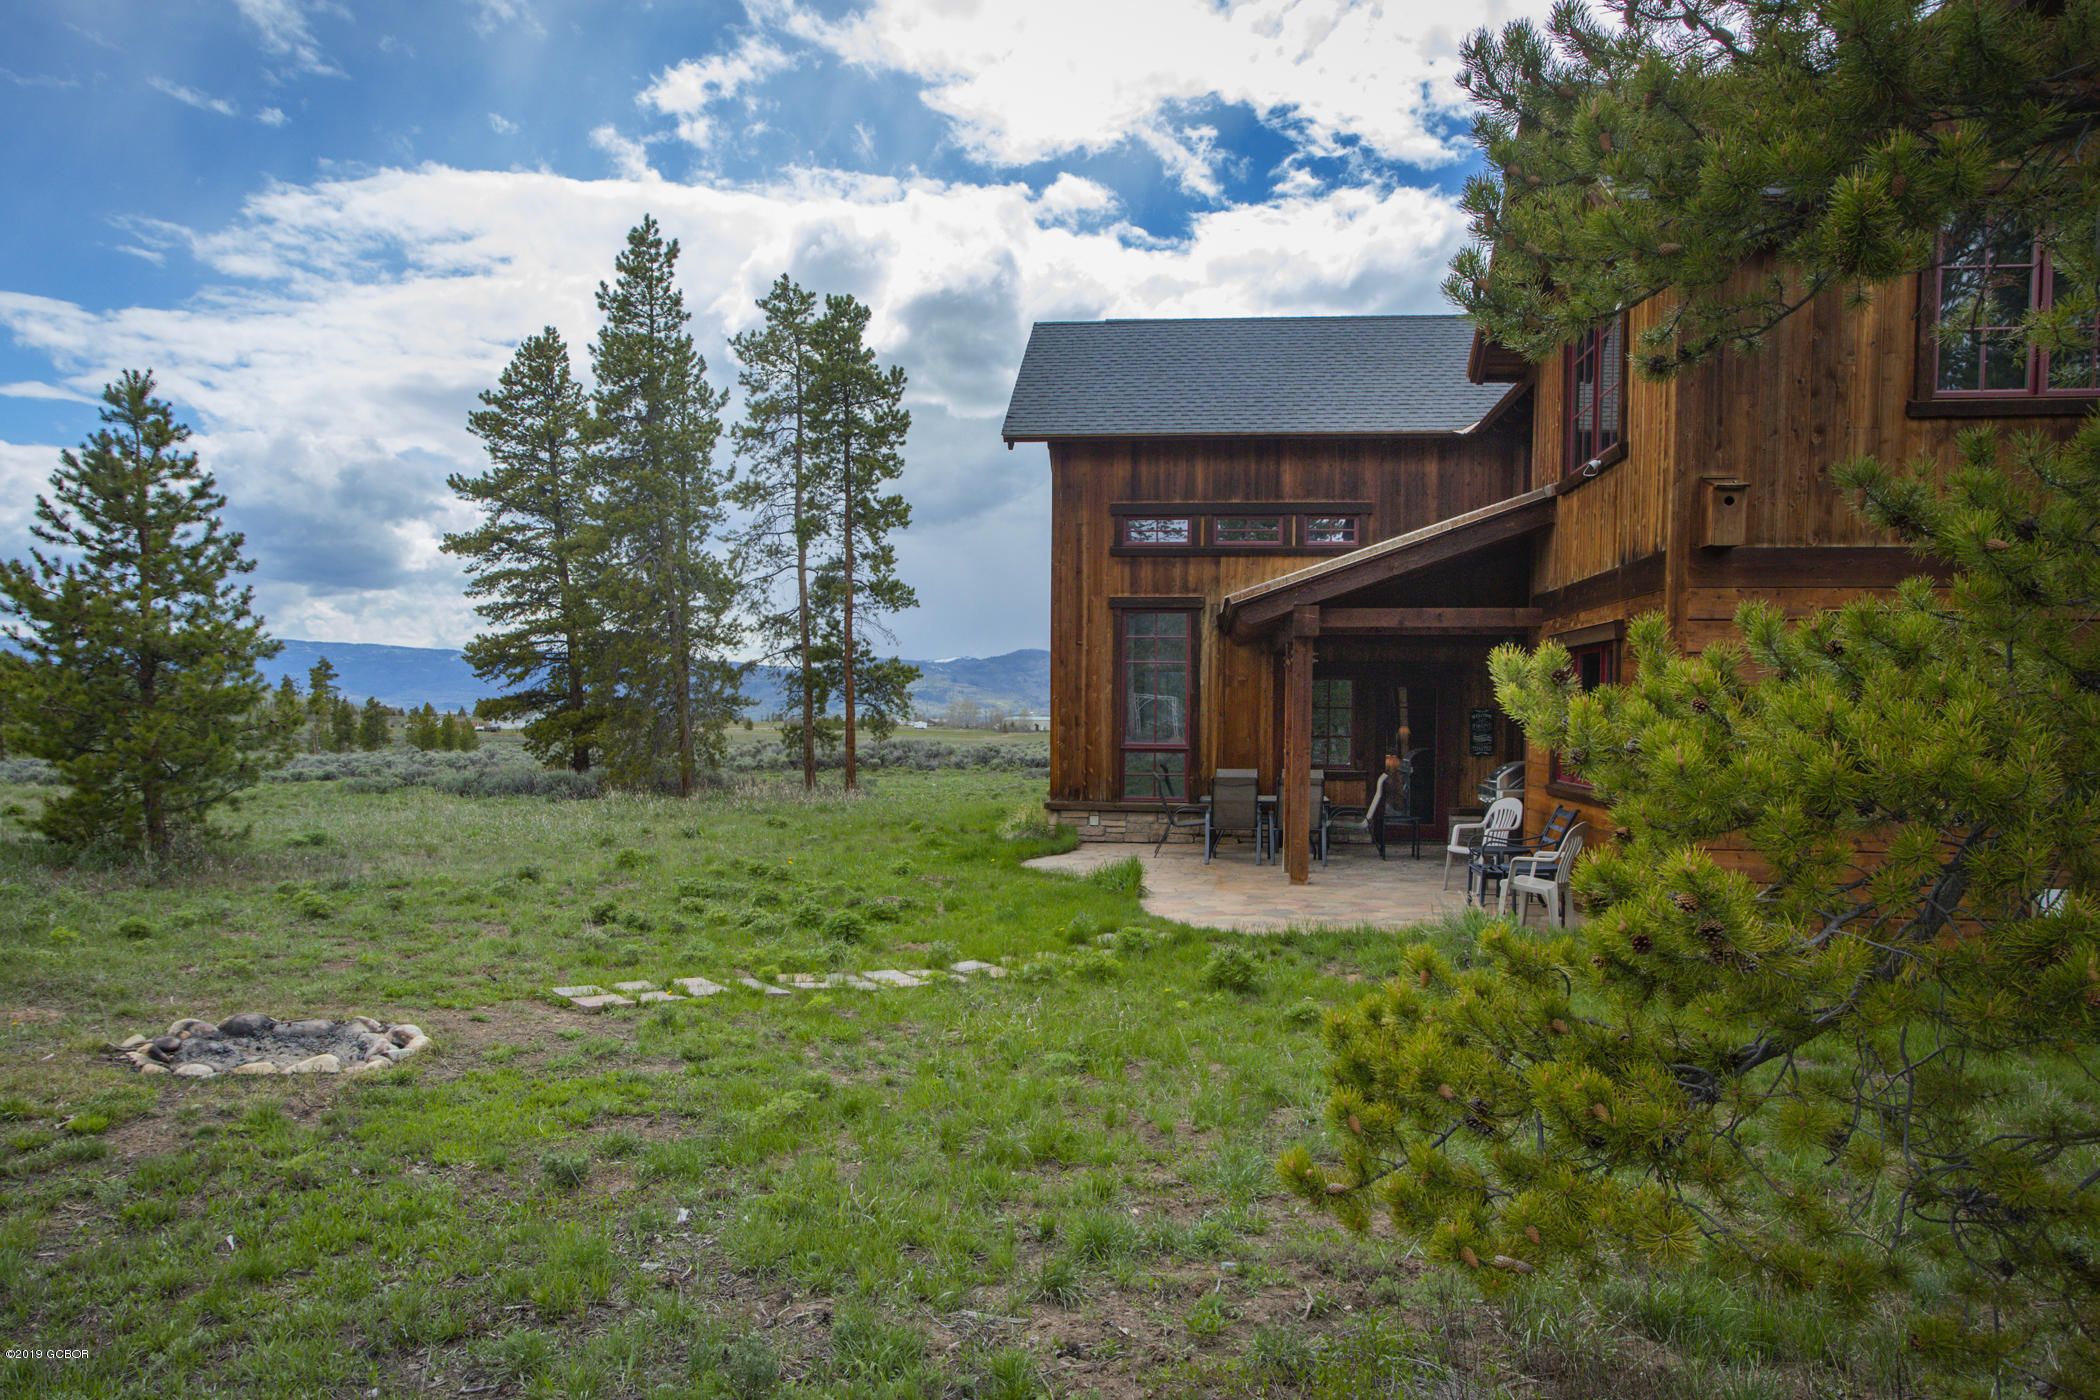 MLS# 19-704 - 35 - 612 County Rd 6237  #, Granby, CO 80446